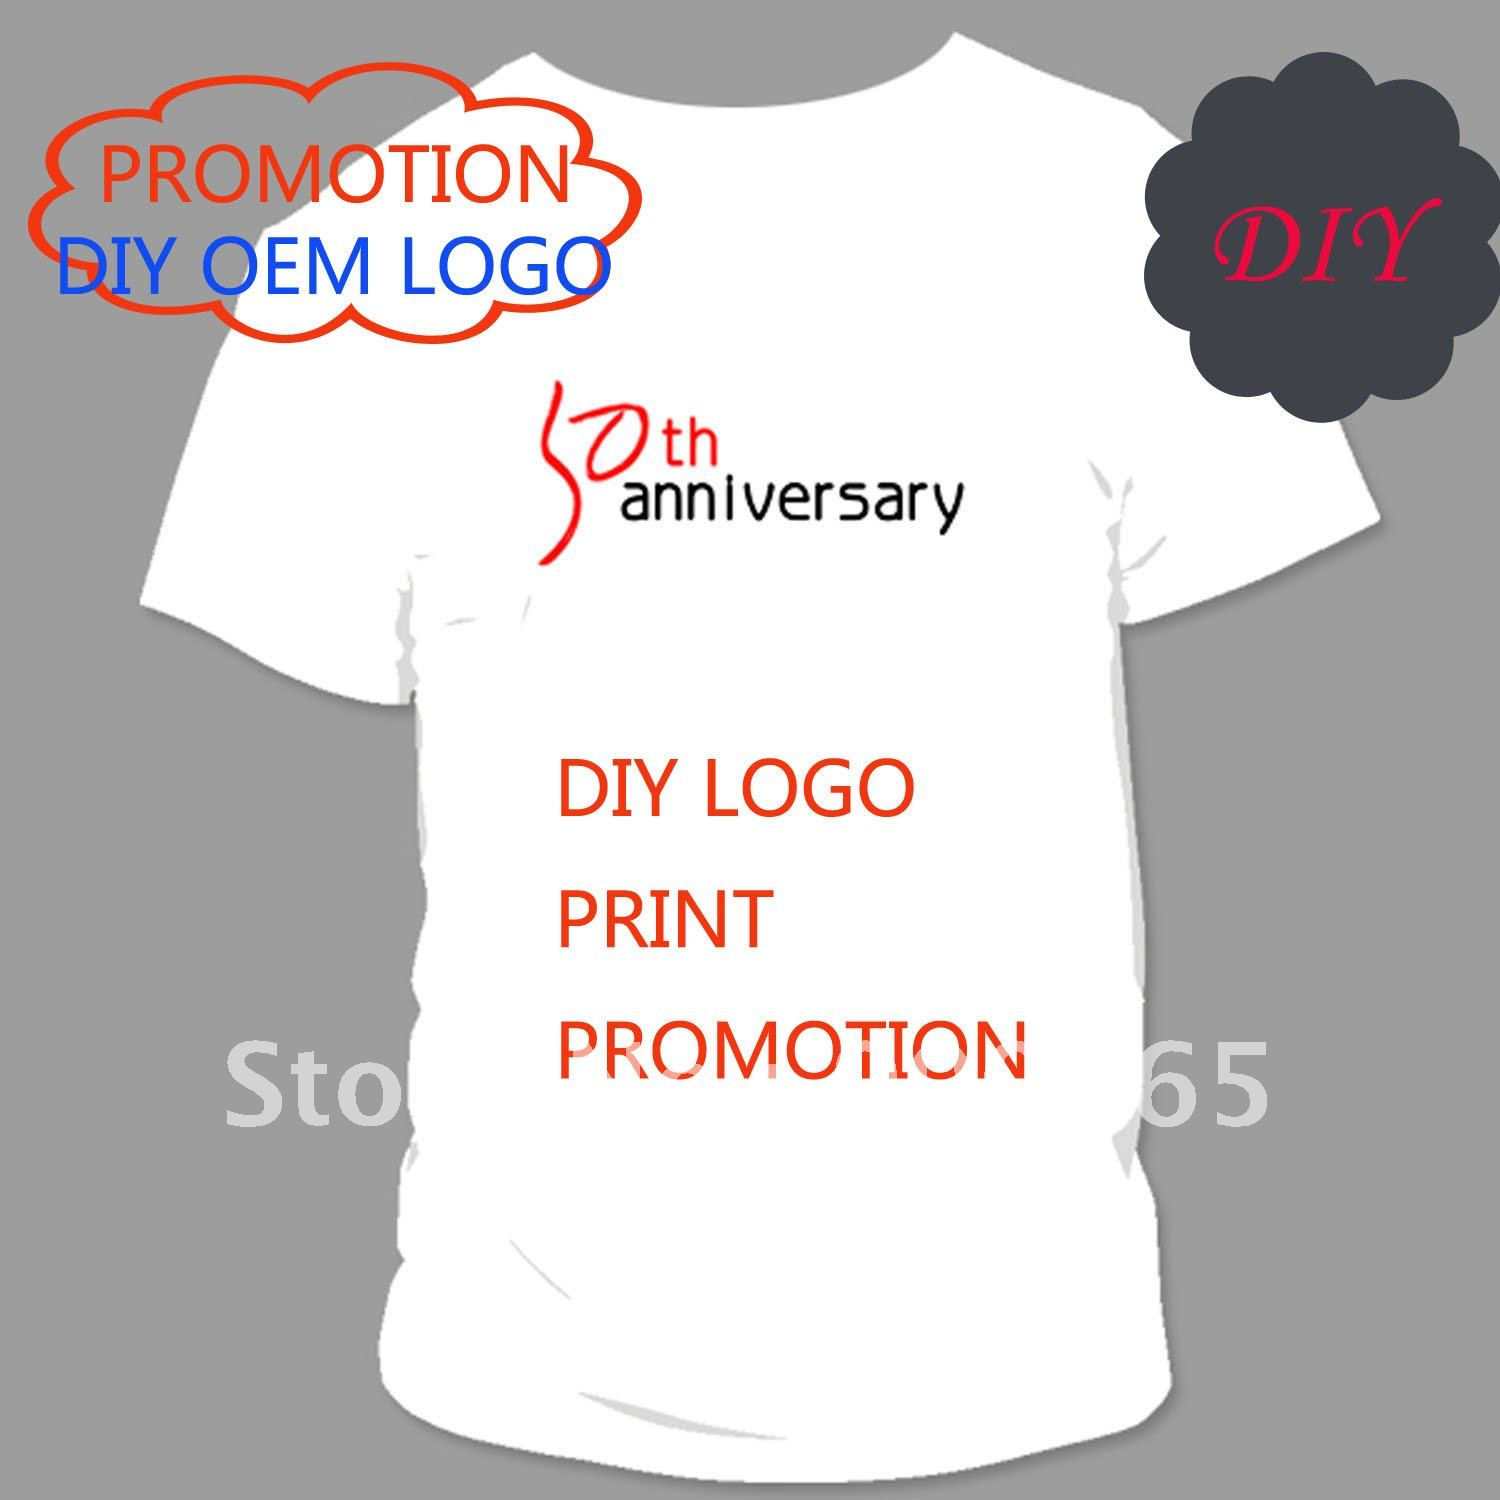 Diy logo print t shirt promotion plug size loose t shirt for Shirts with logo print